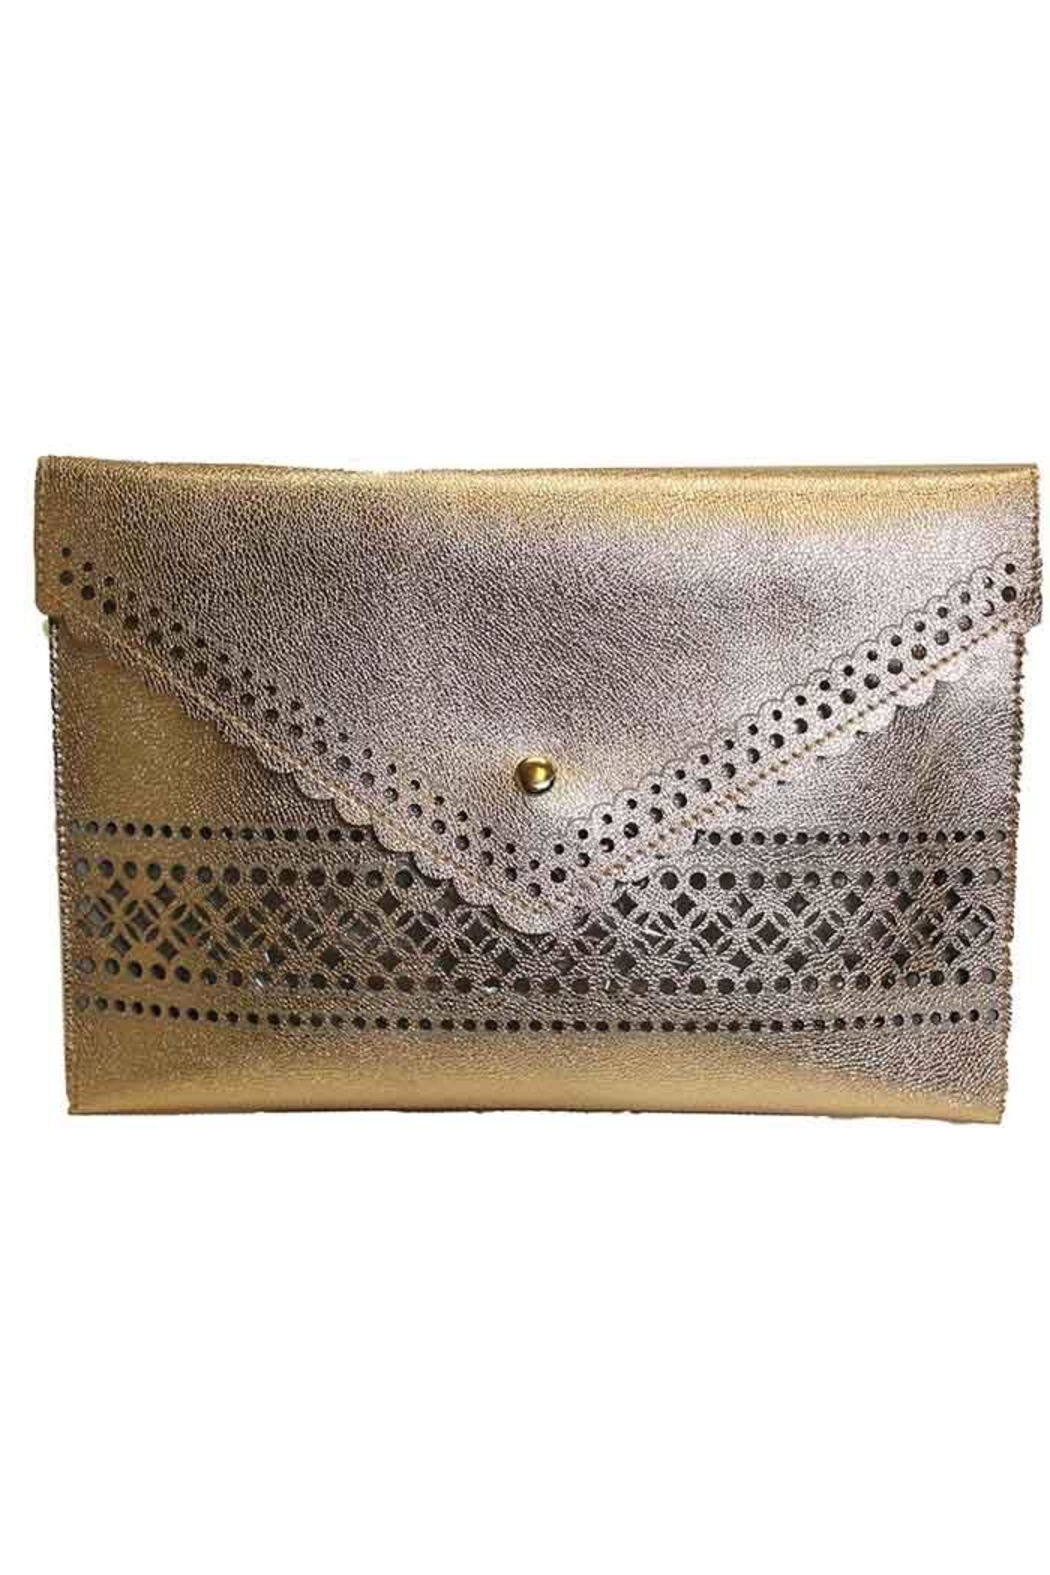 Sondra Roberts Perf'd Nappa Clutch - Front Cropped Image